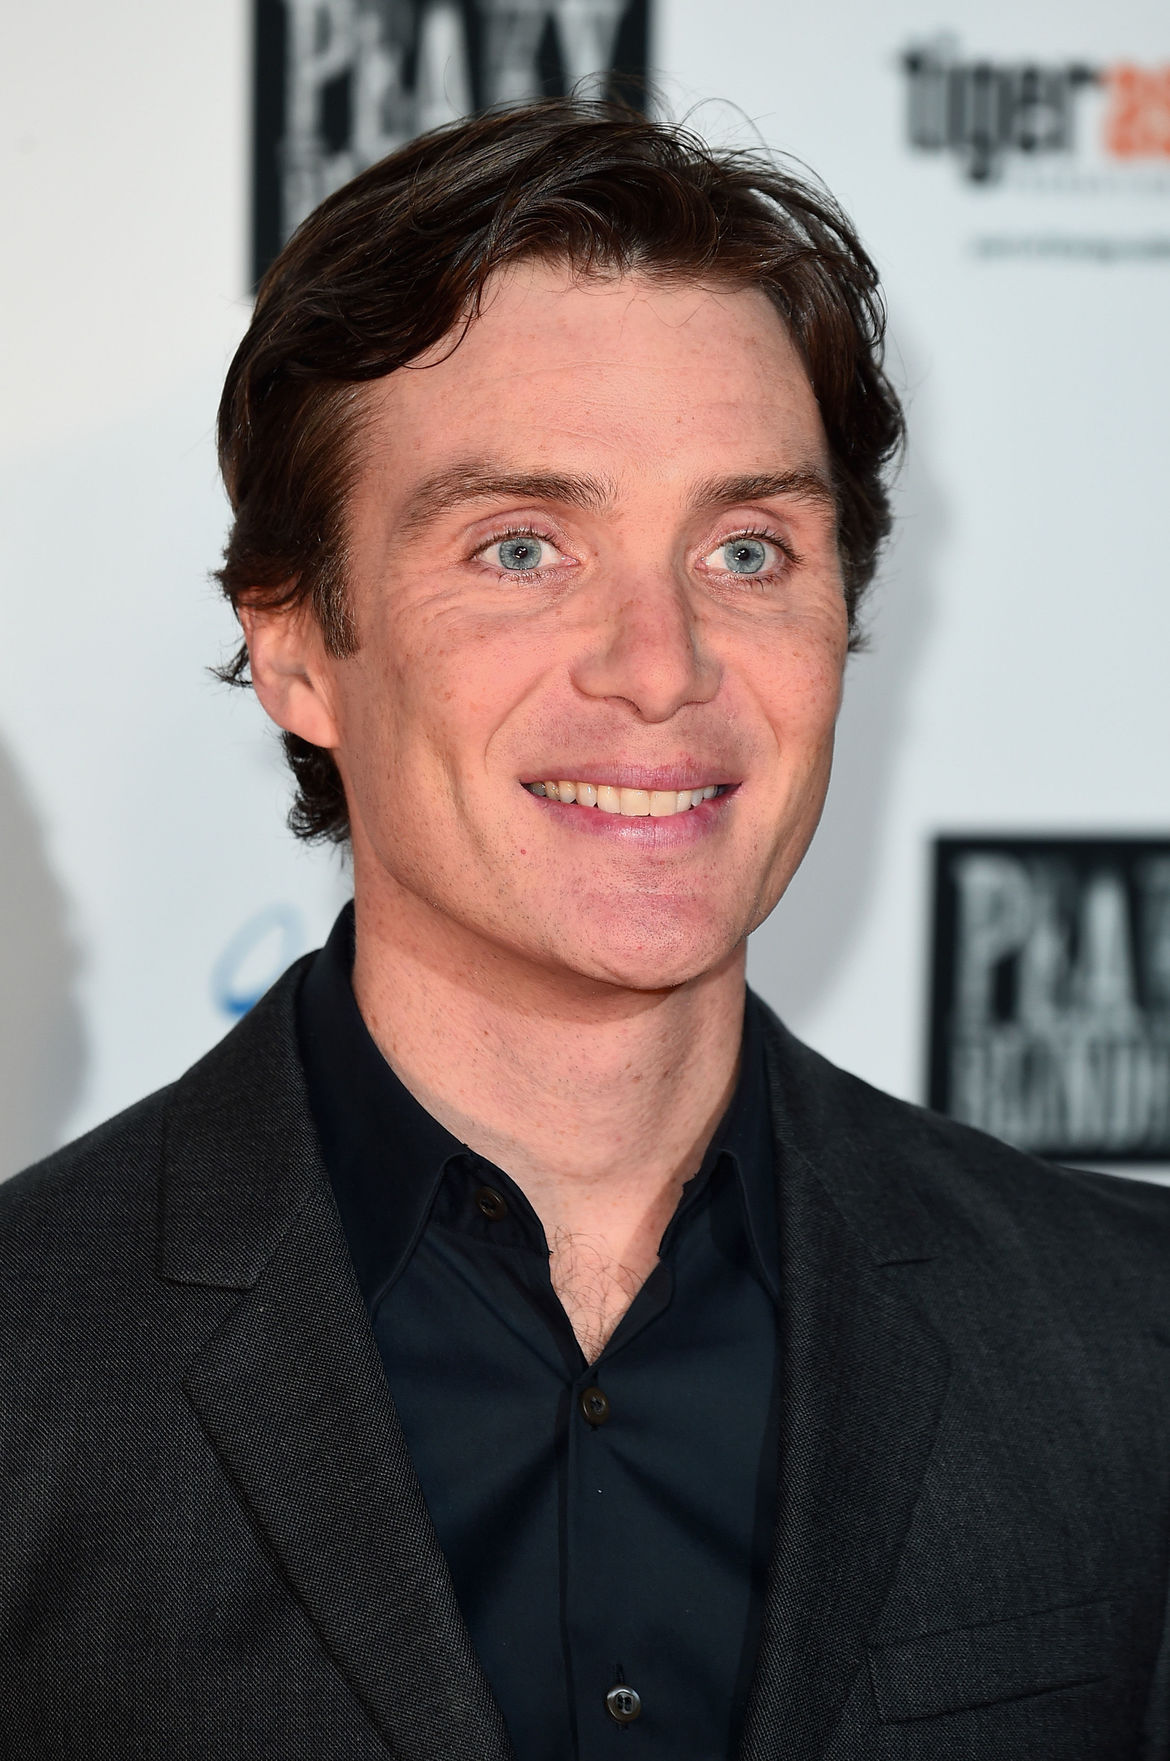 Actor Cillian Murphy (Credit: Eamonn M. McCormack/Getty Images)